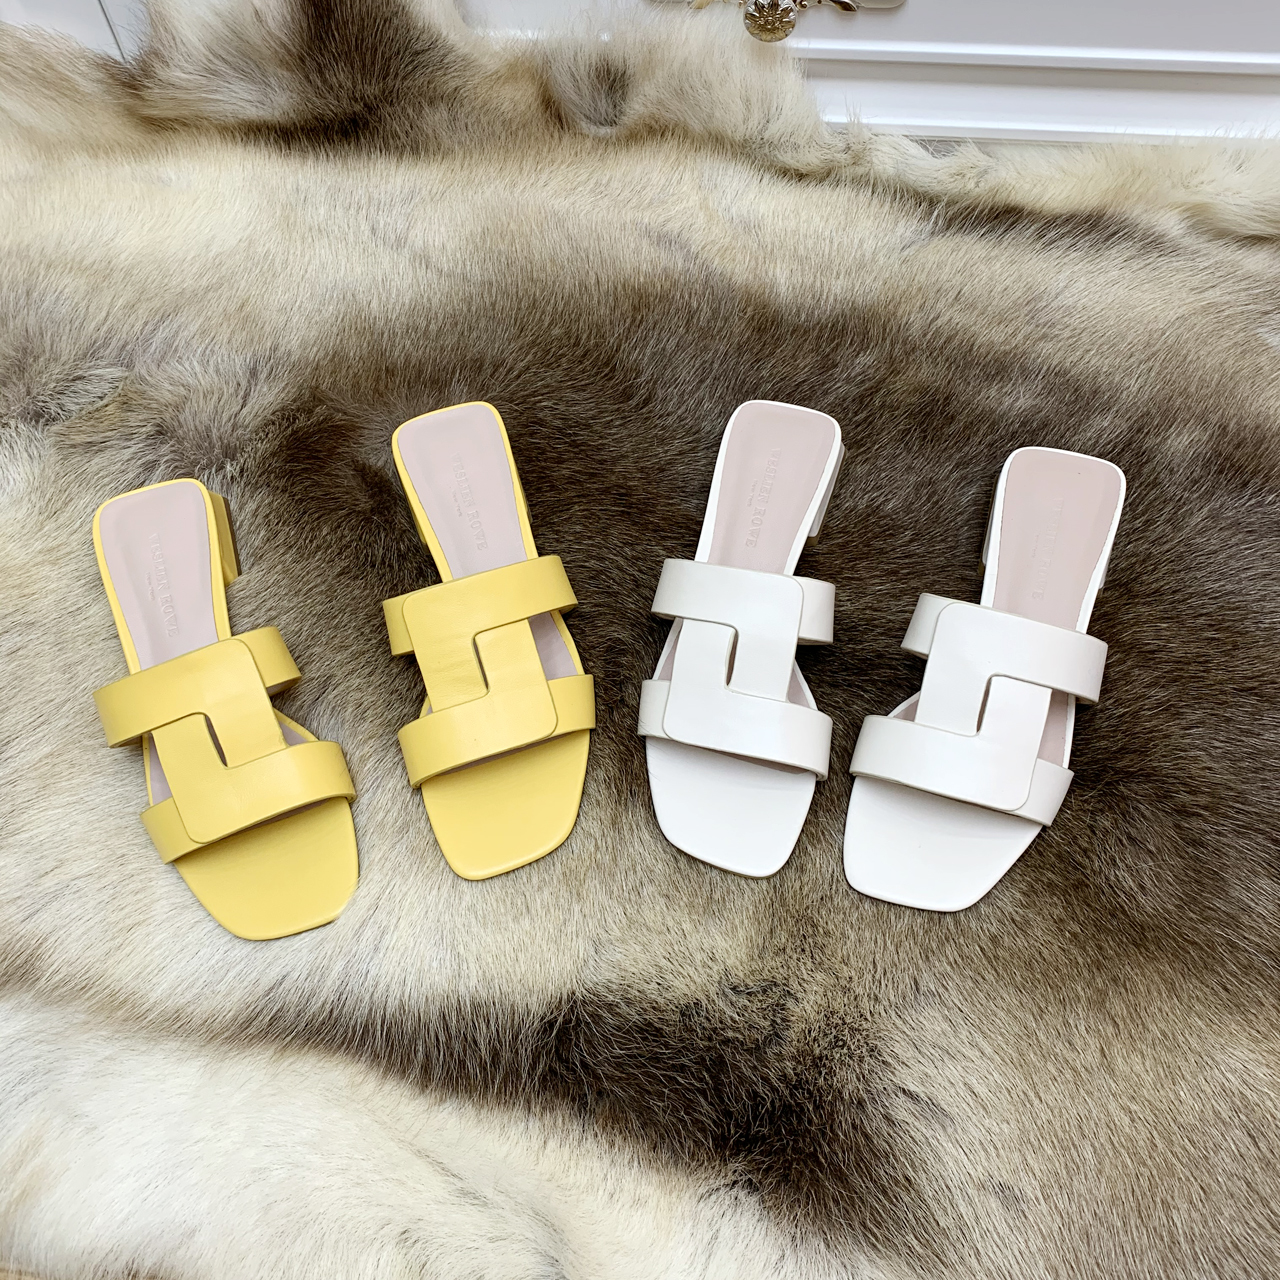 2021 spring and summer new full leather high end simple versatile comfortable wear solid color sandals slippers women